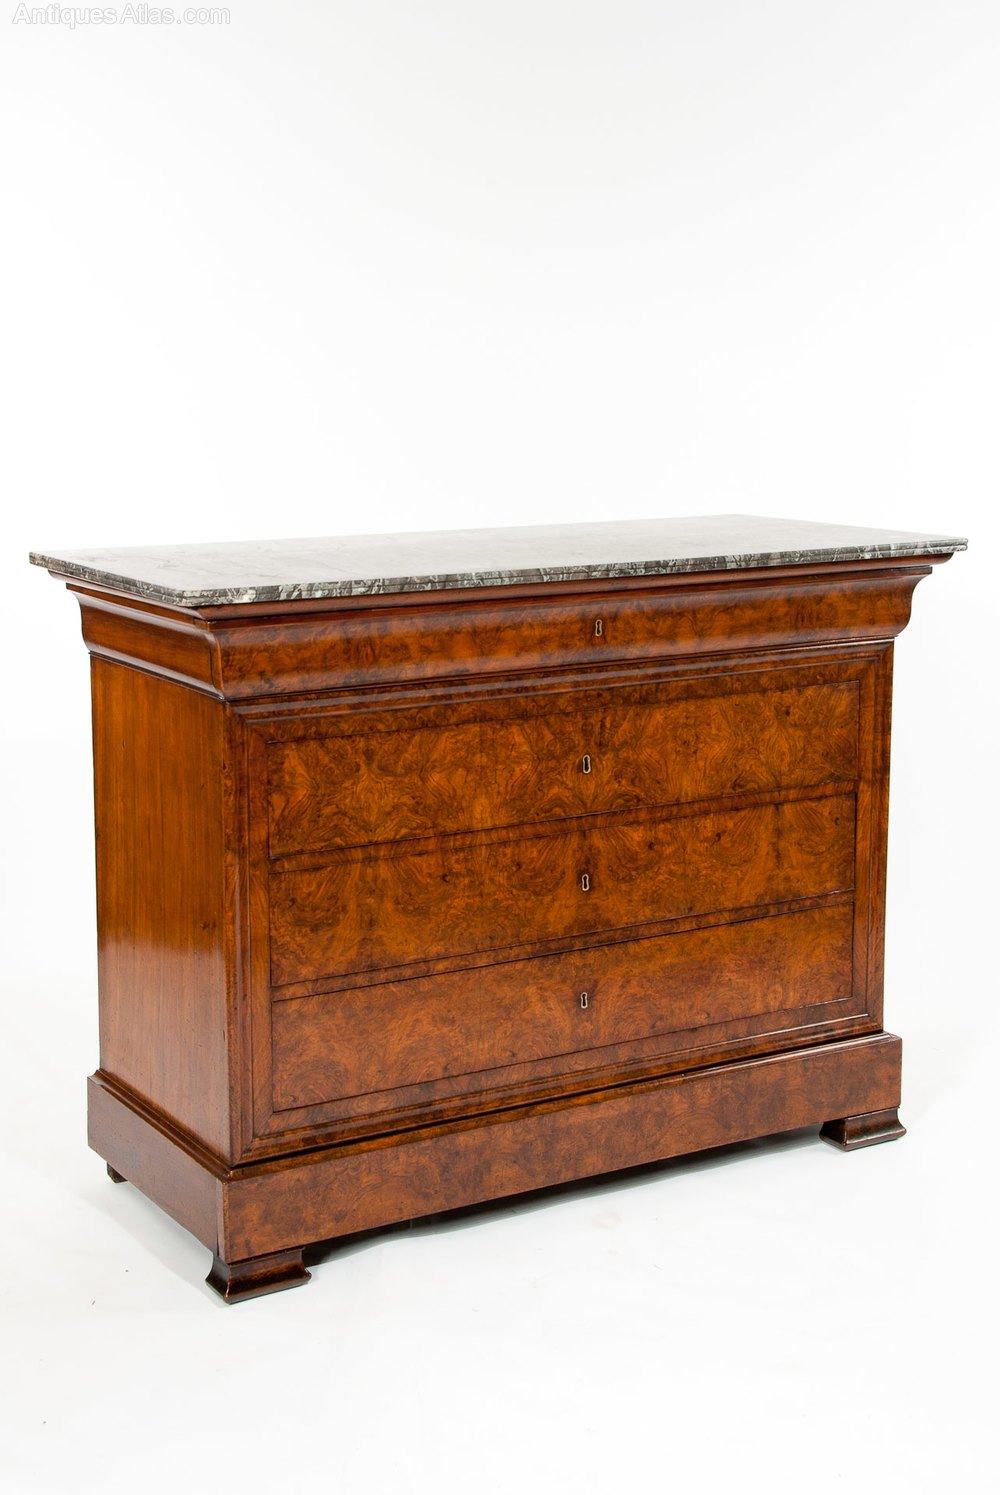 antique walnut french marble chest commode antiques atlas. Black Bedroom Furniture Sets. Home Design Ideas